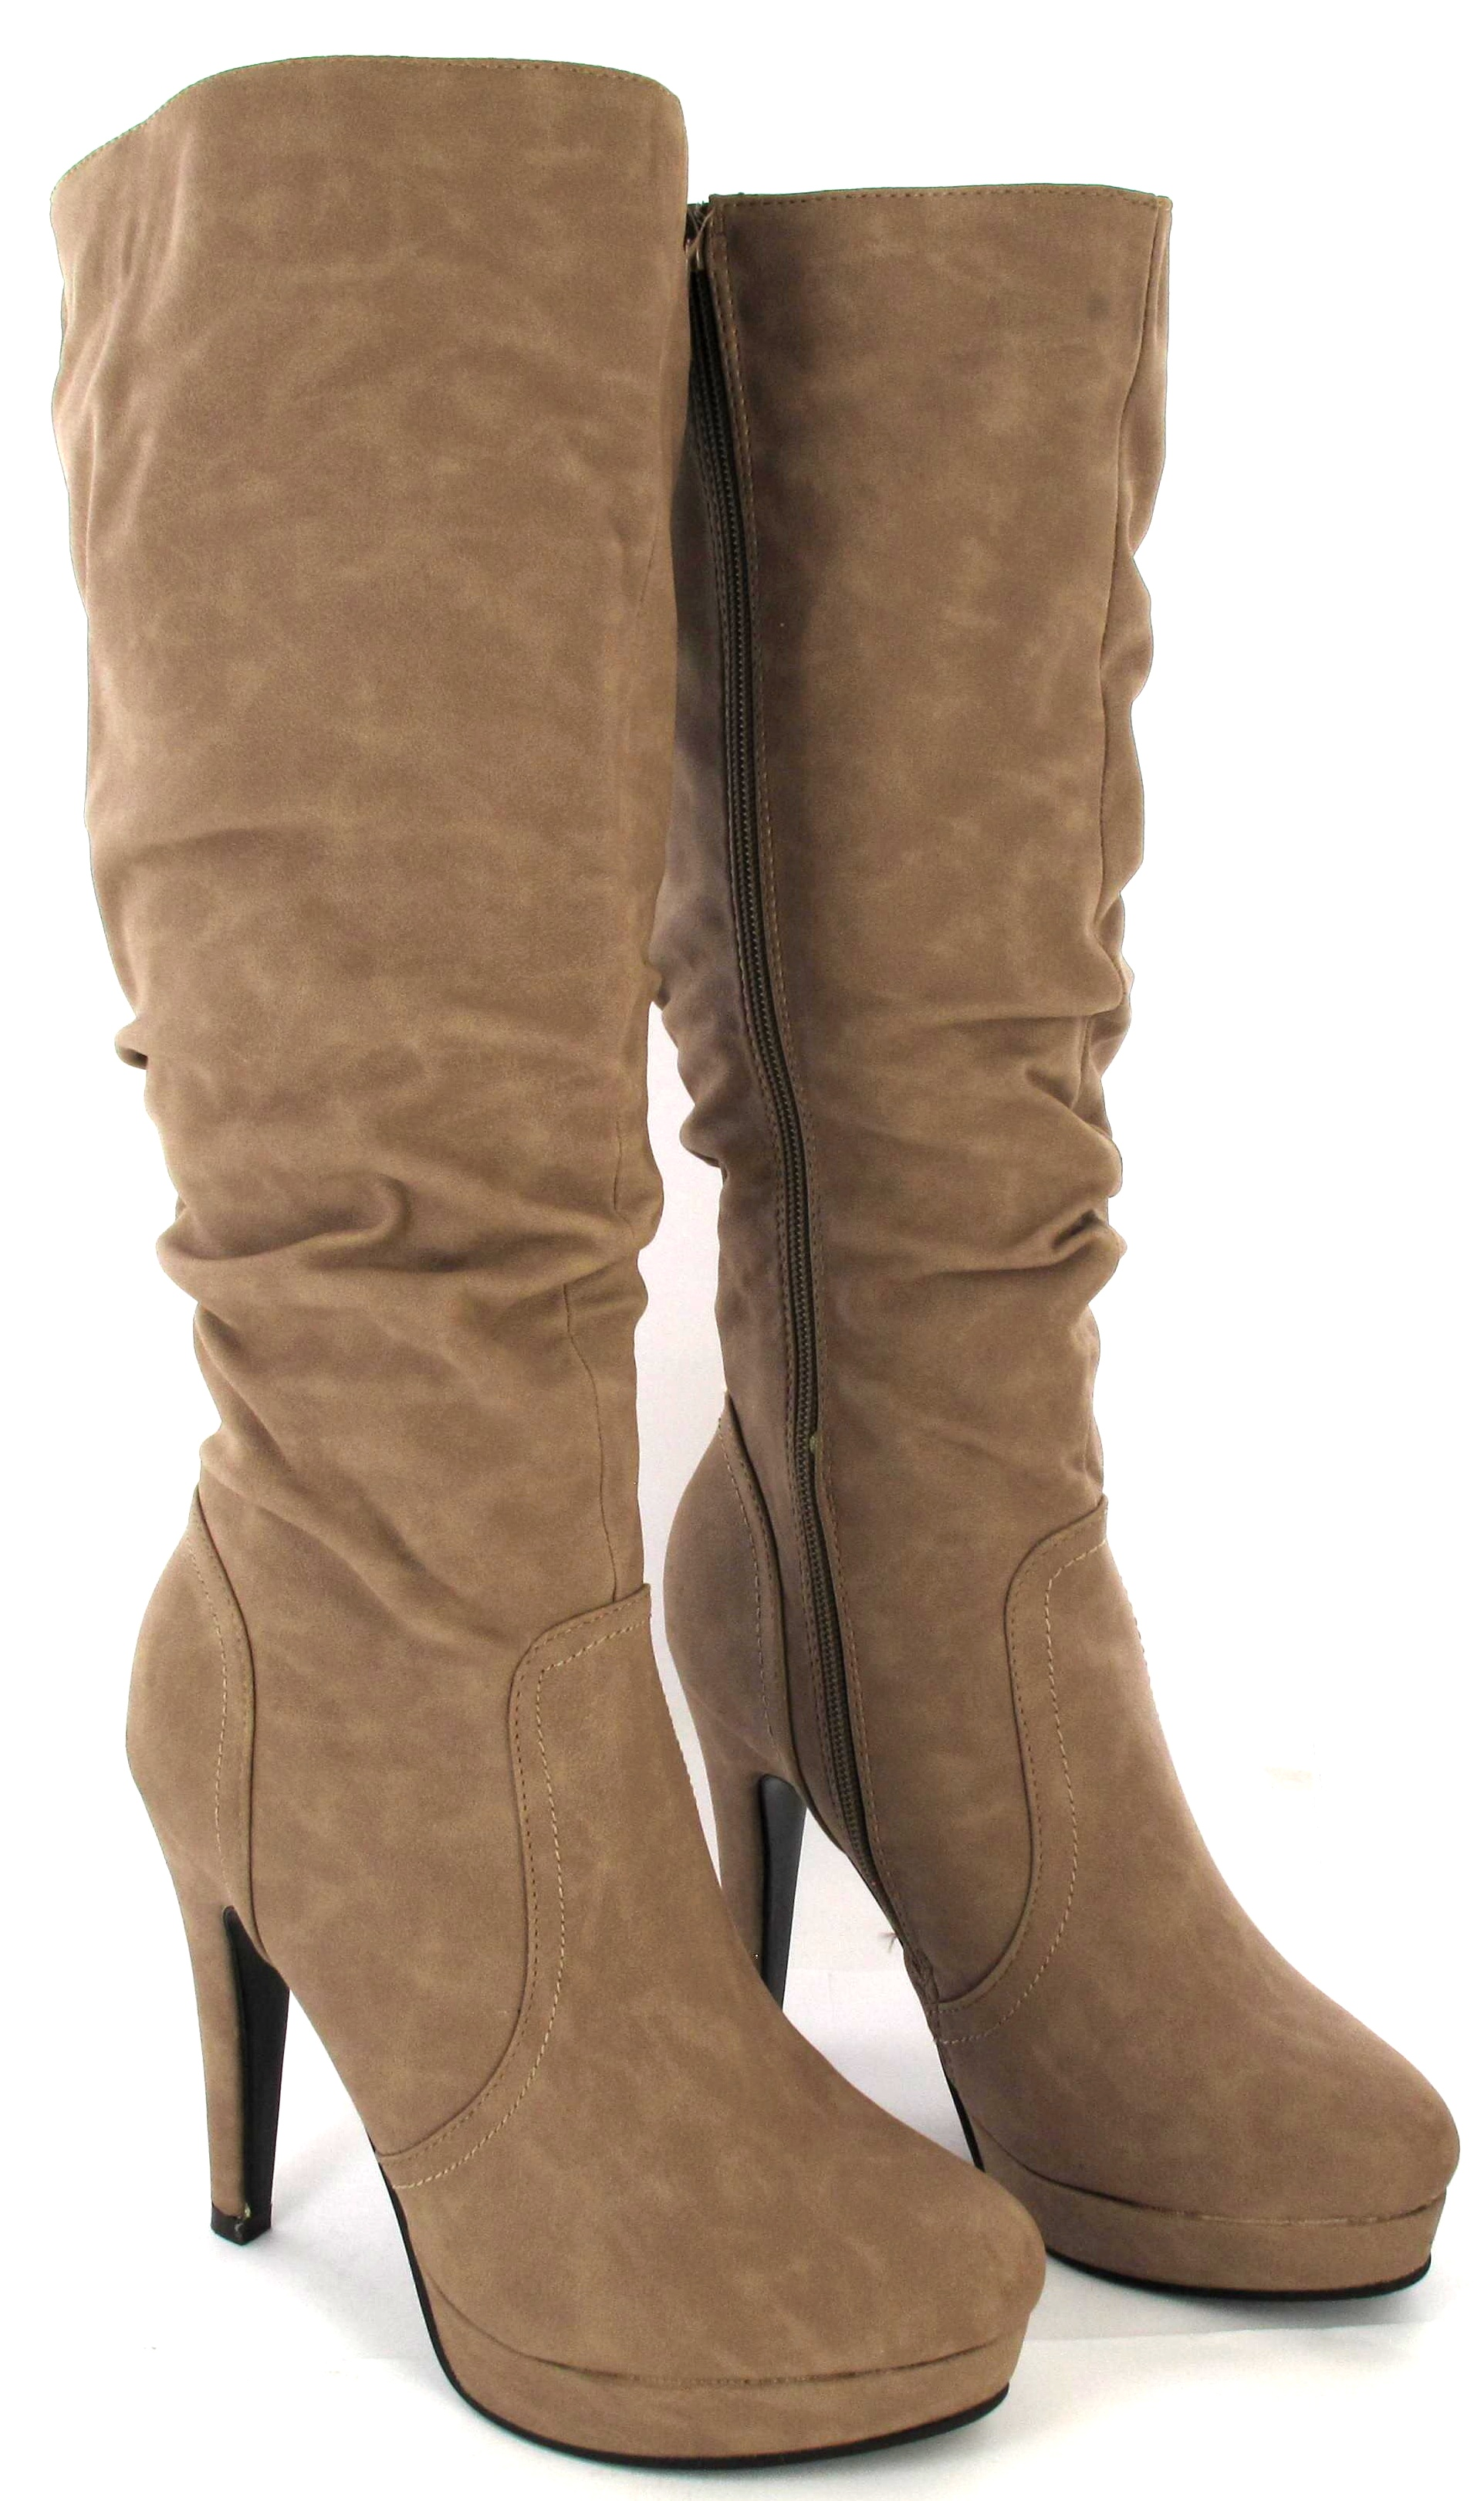 WOMENS-LADIES-FASHION-WEDGE-HEEL-BLACK-KHAKI-TRENDY-BOOTS-SHOES-SIZE-3-4-5-6-7-8